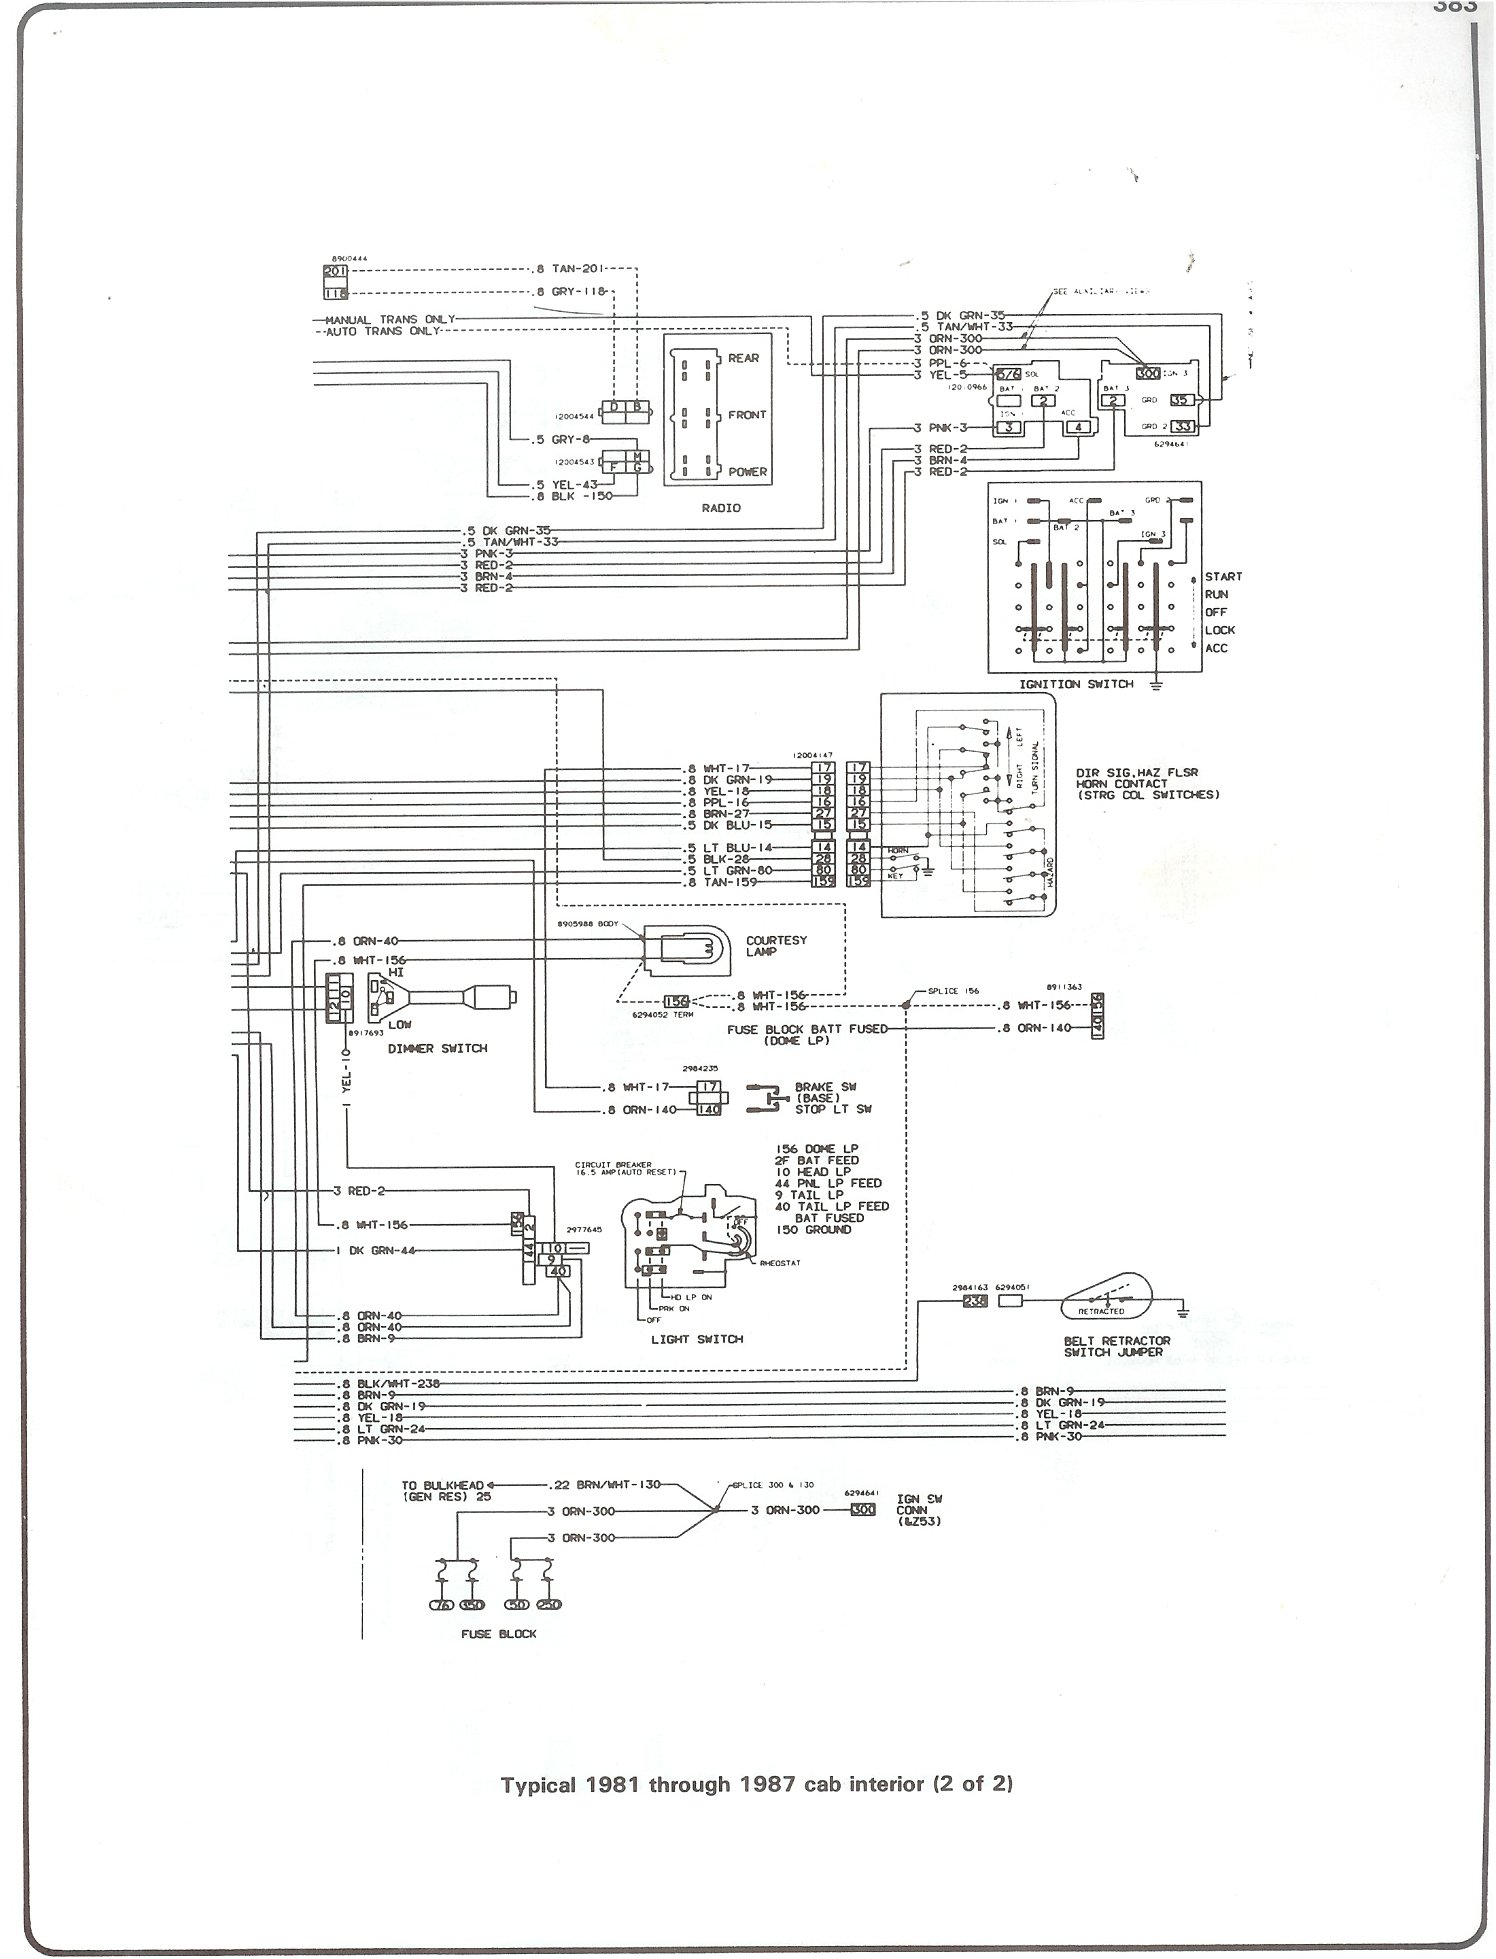 81 87_cab_inter_pg2 complete 73 87 wiring diagrams 1980 chevy truck fuse box diagram at mifinder.co